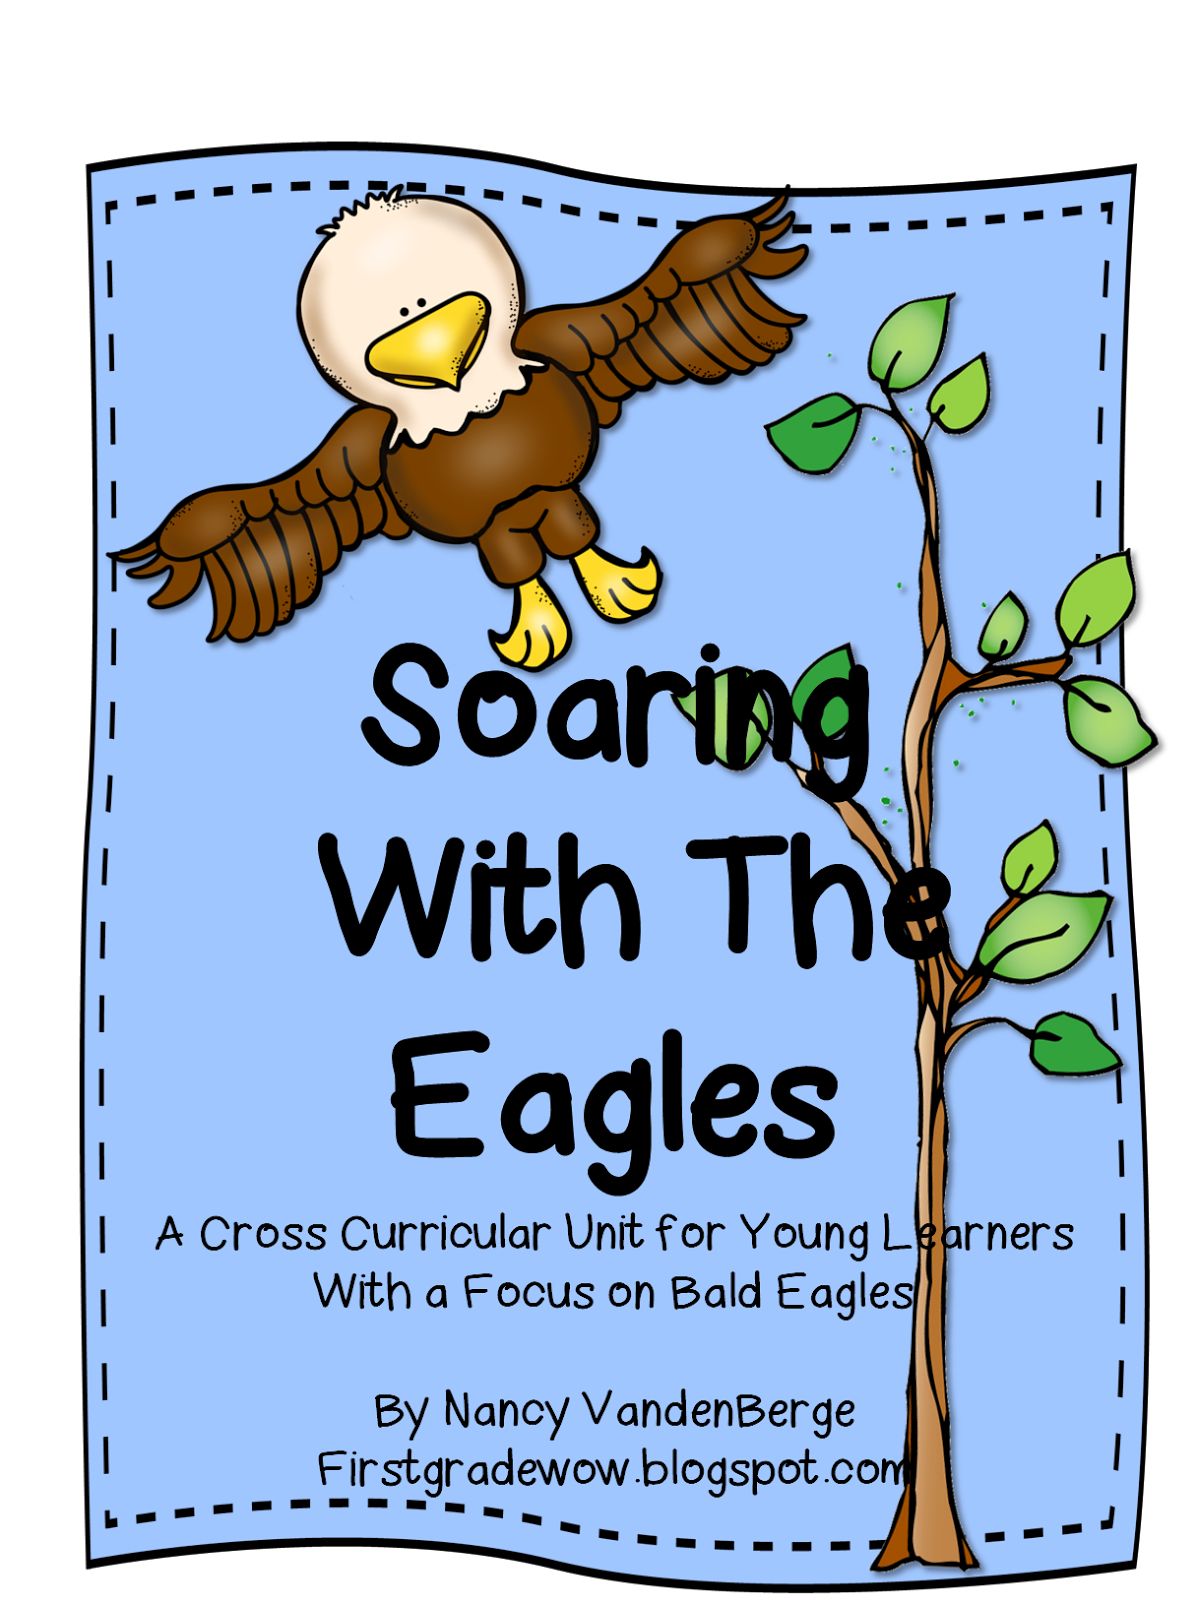 First Grade Wow Soaring With Eagles And Hopping Into Leap